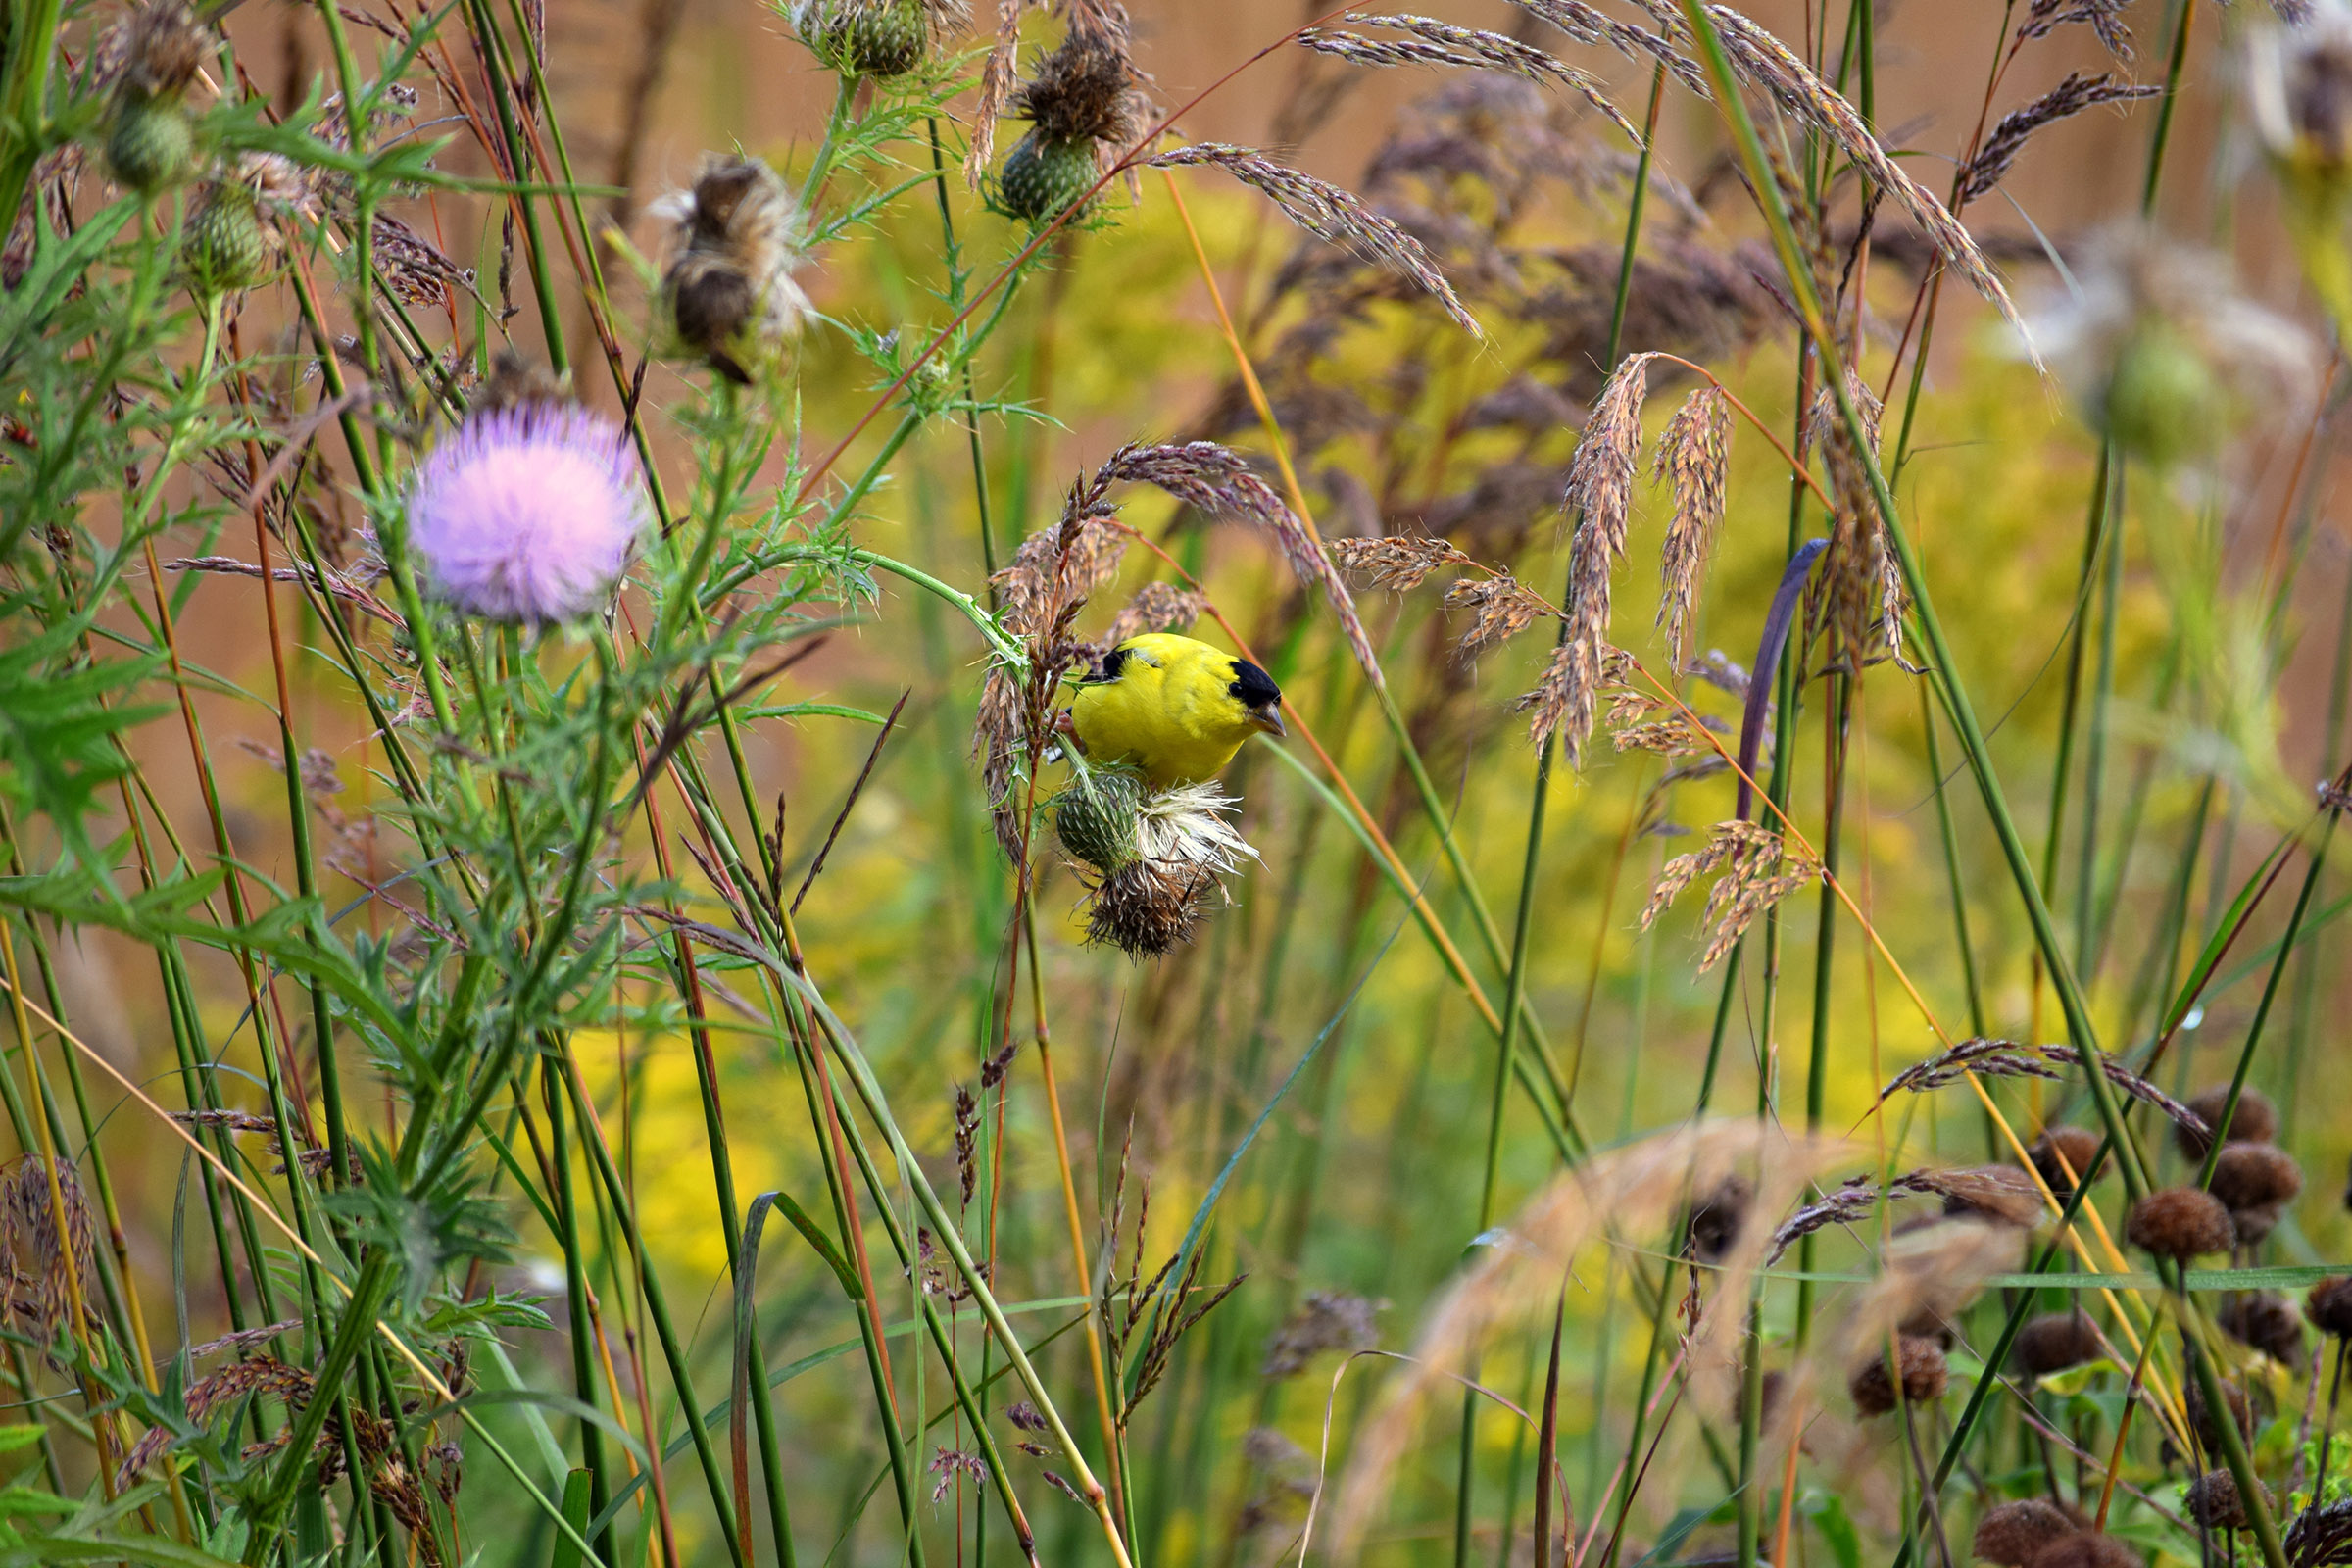 A brightly colored yellow and black goldfinch eats seeds from a pale pink thistle flower head.